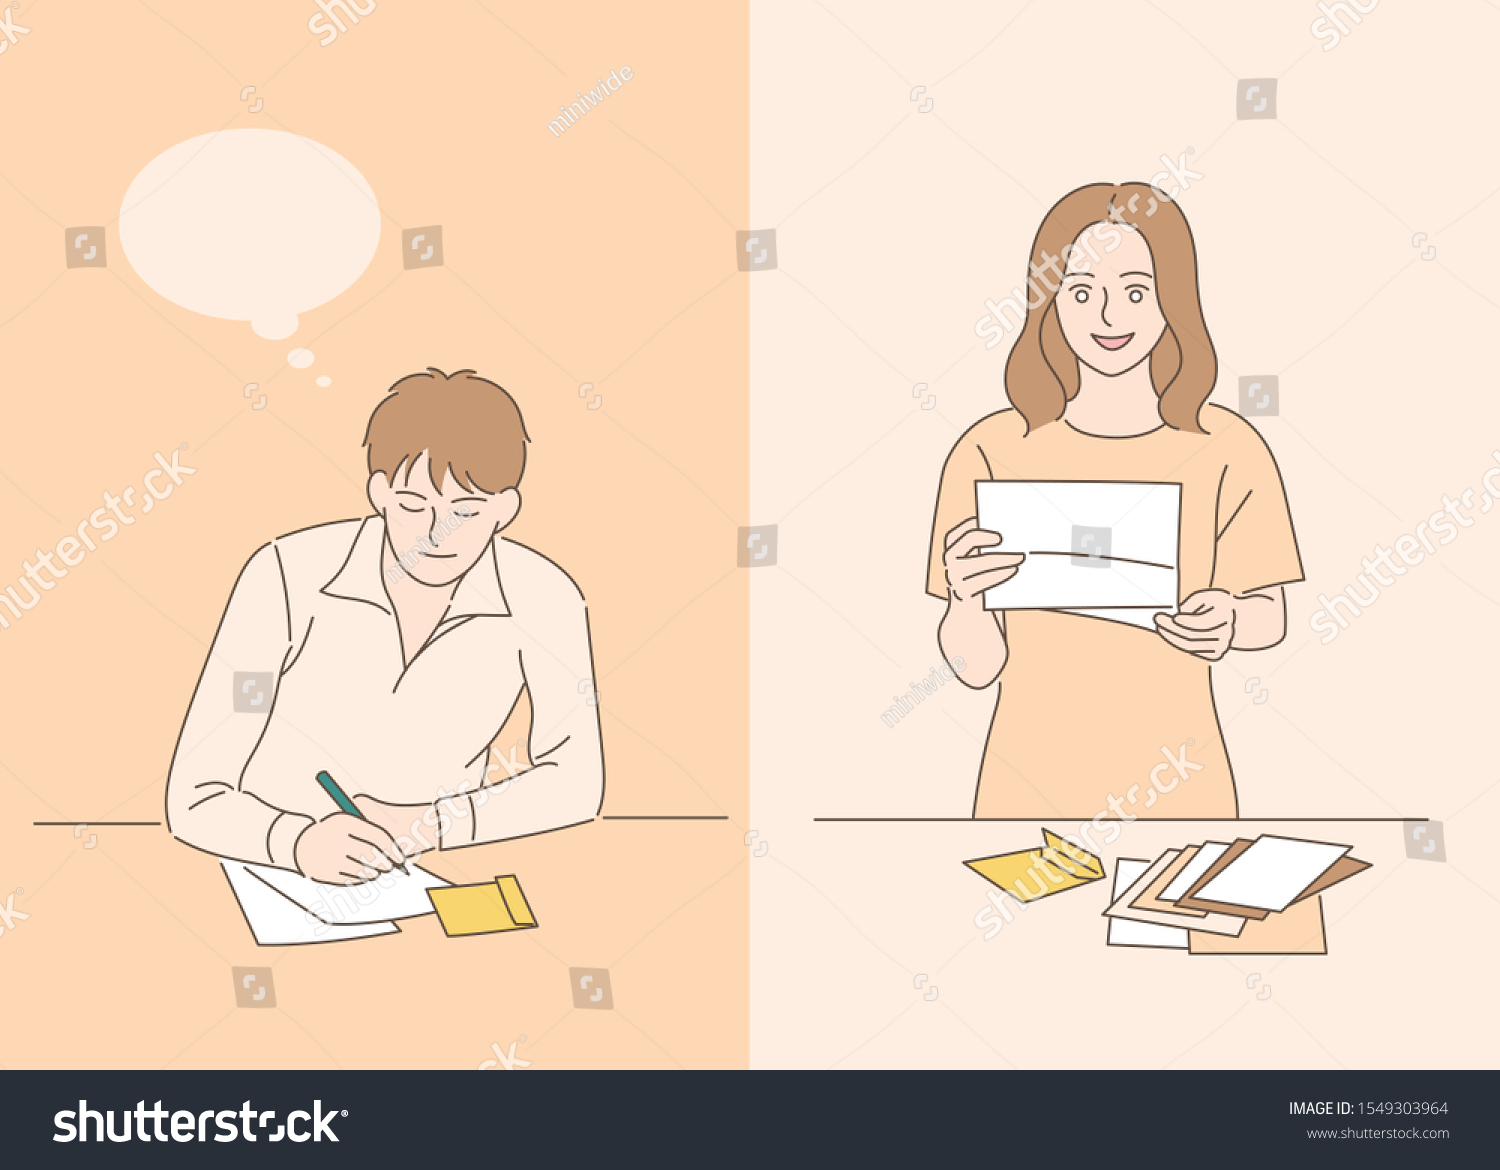 Letter To A Girlfriend from image.shutterstock.com